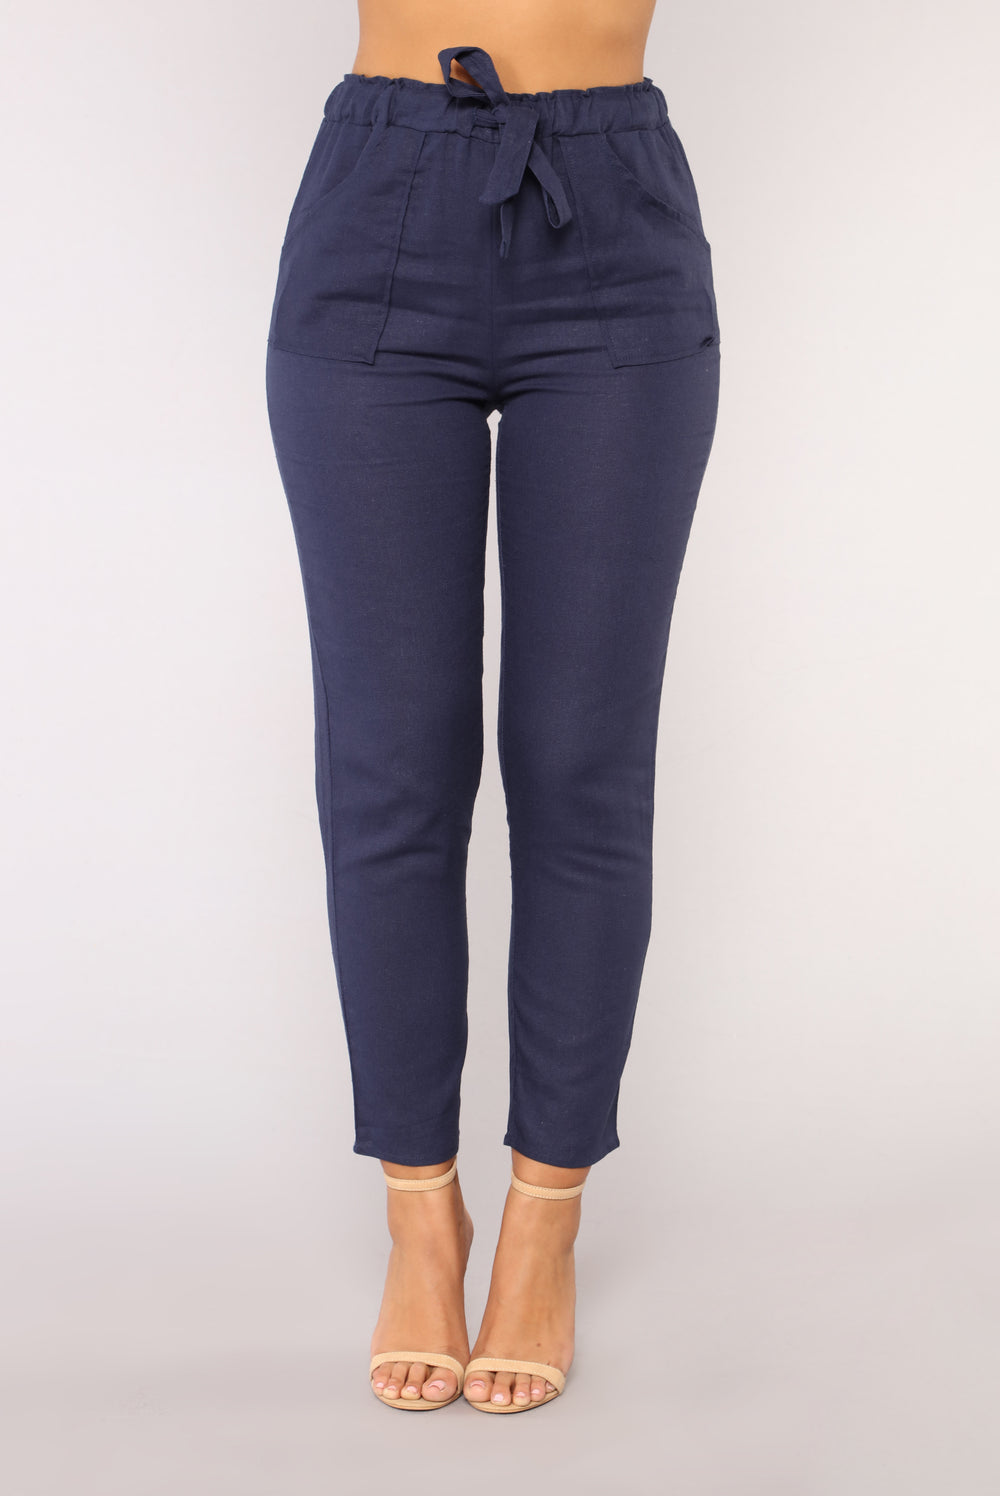 All Tied Up Pants - Navy